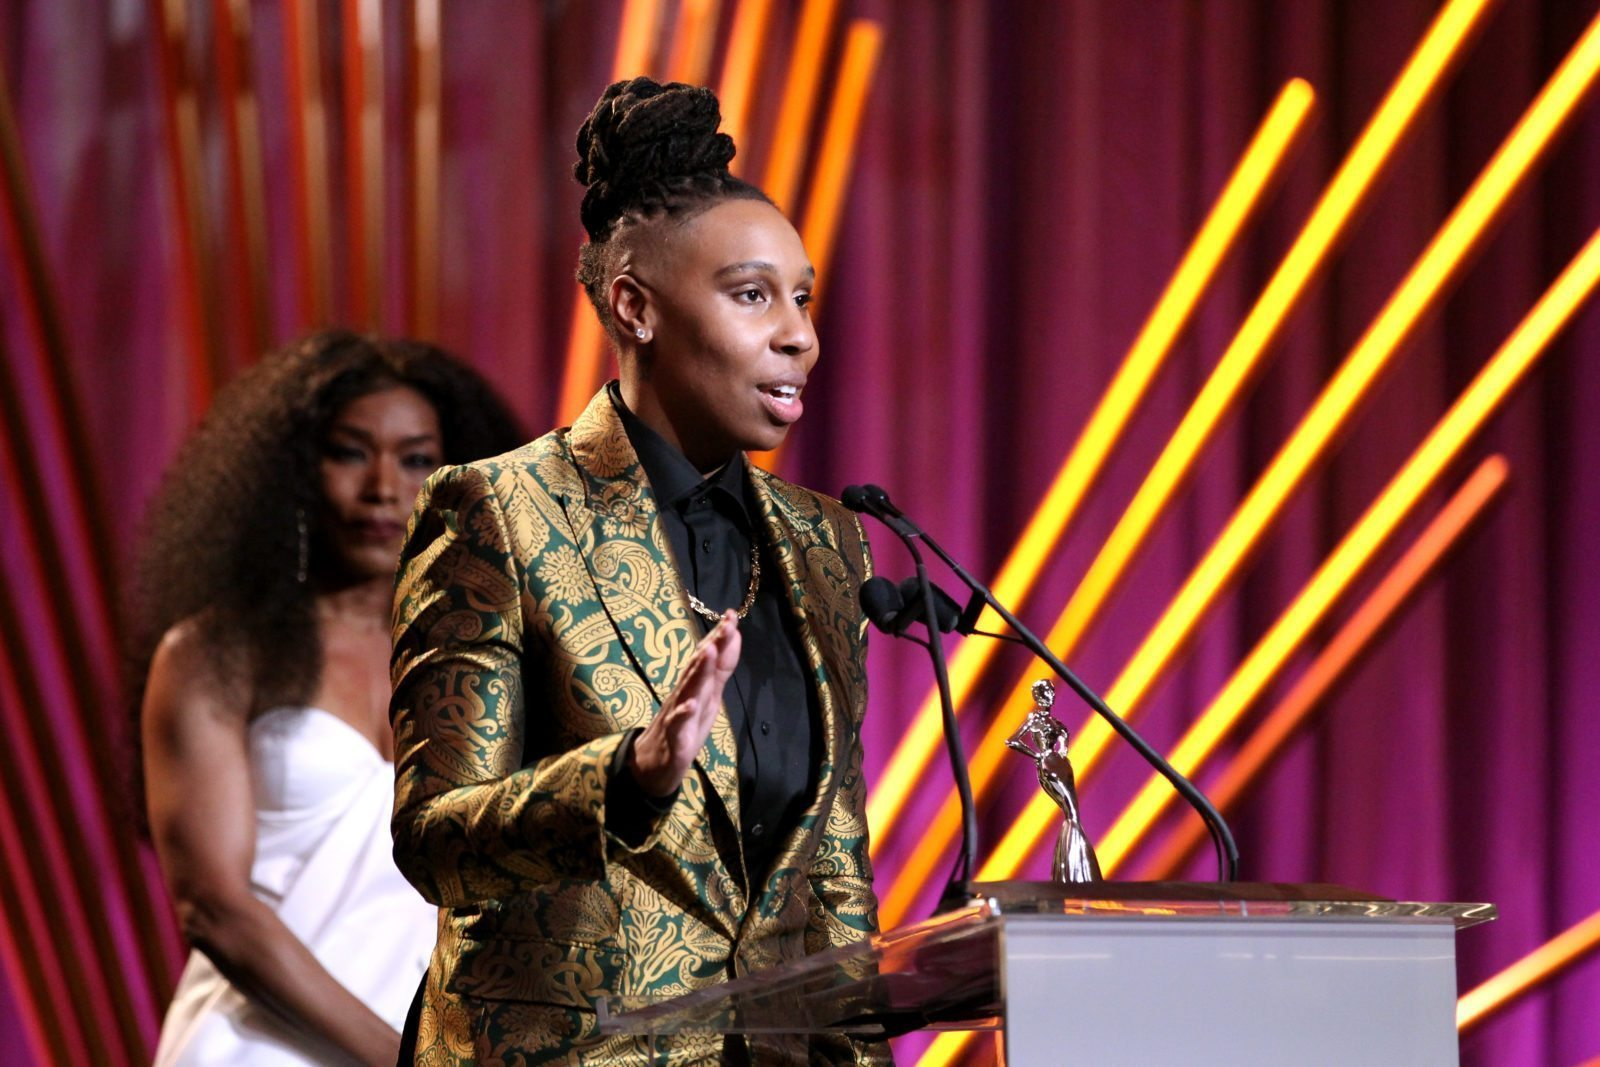 BEVERLY HILLS, CA - MARCH 01: Honoree Lena Waithe speaks onstage during the 2018 Essence Black Women In Hollywood Oscars Luncheon at Regent Beverly Wilshire Hotel on March 1, 2018 in Beverly Hills, California. (Photo by Leon Bennett/Getty Images for Essence)